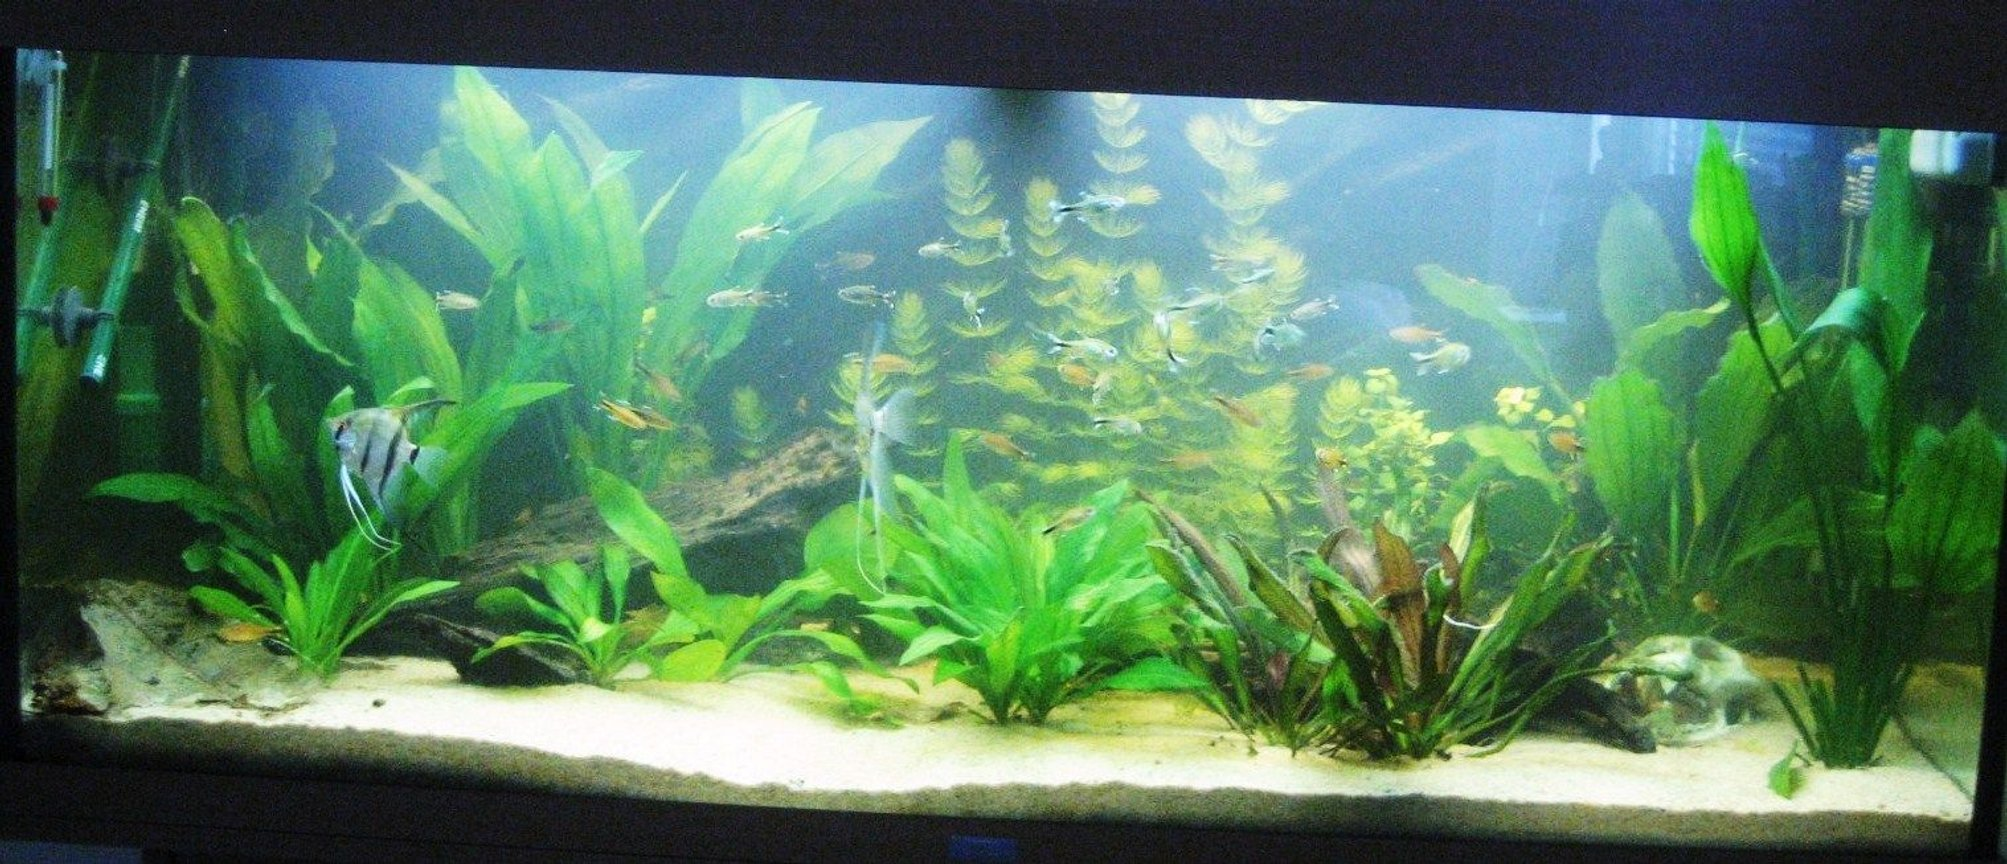 53 gallons freshwater fish tank (mostly fish and non-living decorations) - My Amazonia biotope.